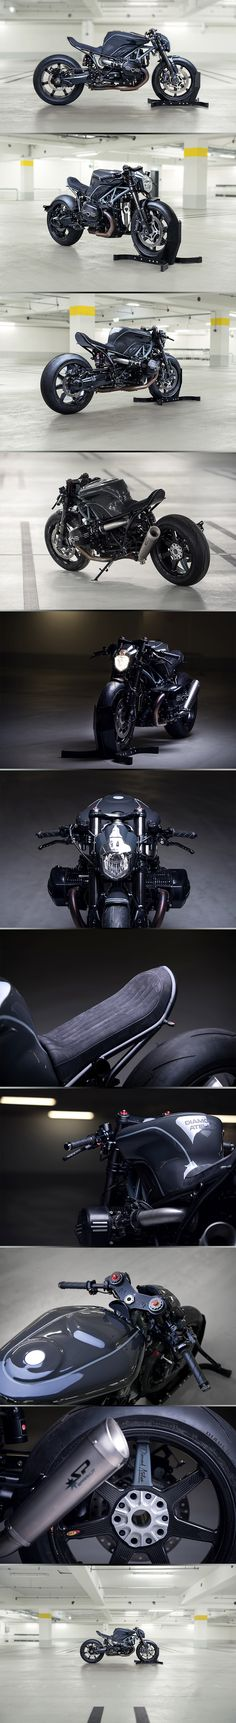 Diamond Atelier's BMW R nineT Neo-Racer Custom Motorcycles, Custom Bikes, Cars And Motorcycles, Bmw Scrambler, Cafe Racer Girl, Cafe Racing, Vintage Classics, Café Racers, Street Bikes